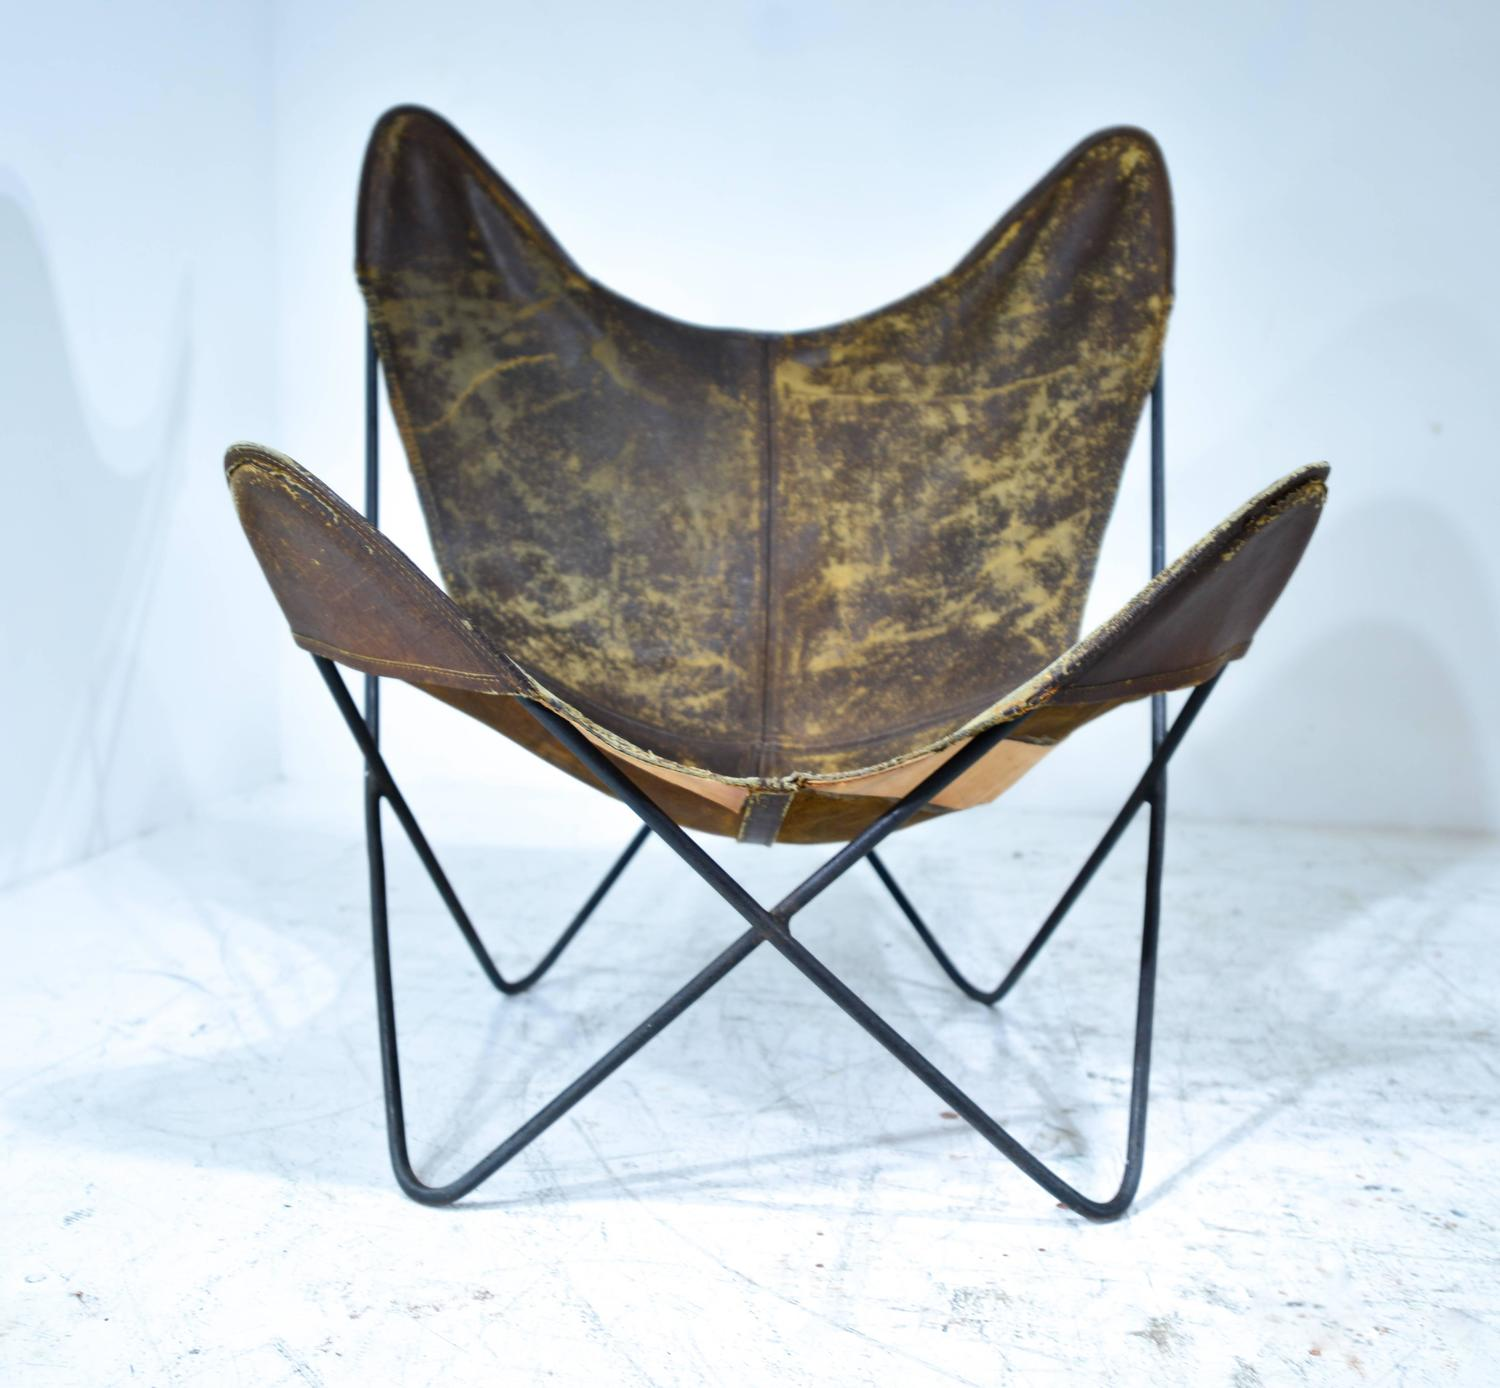 jorge hardoy ferrari butterfly chair at 1stdibs. Black Bedroom Furniture Sets. Home Design Ideas